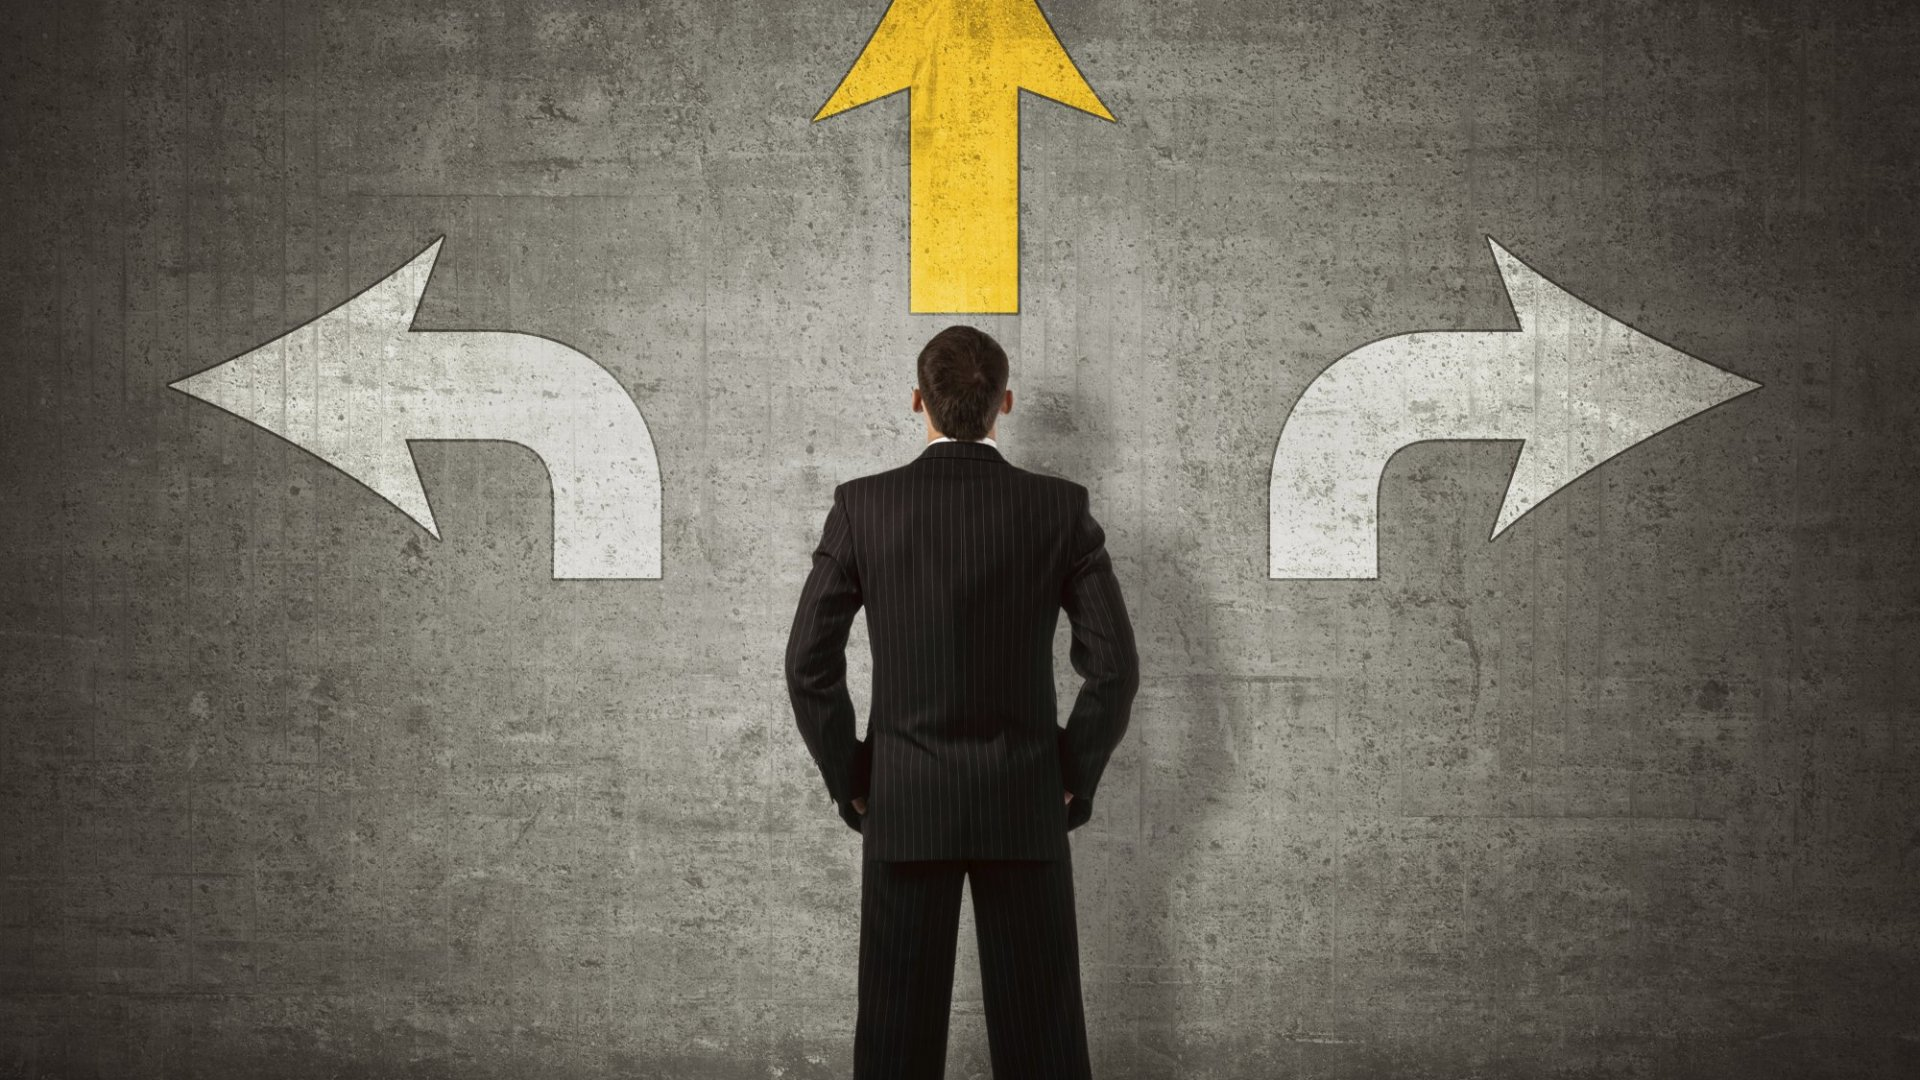 Employees and decision-making